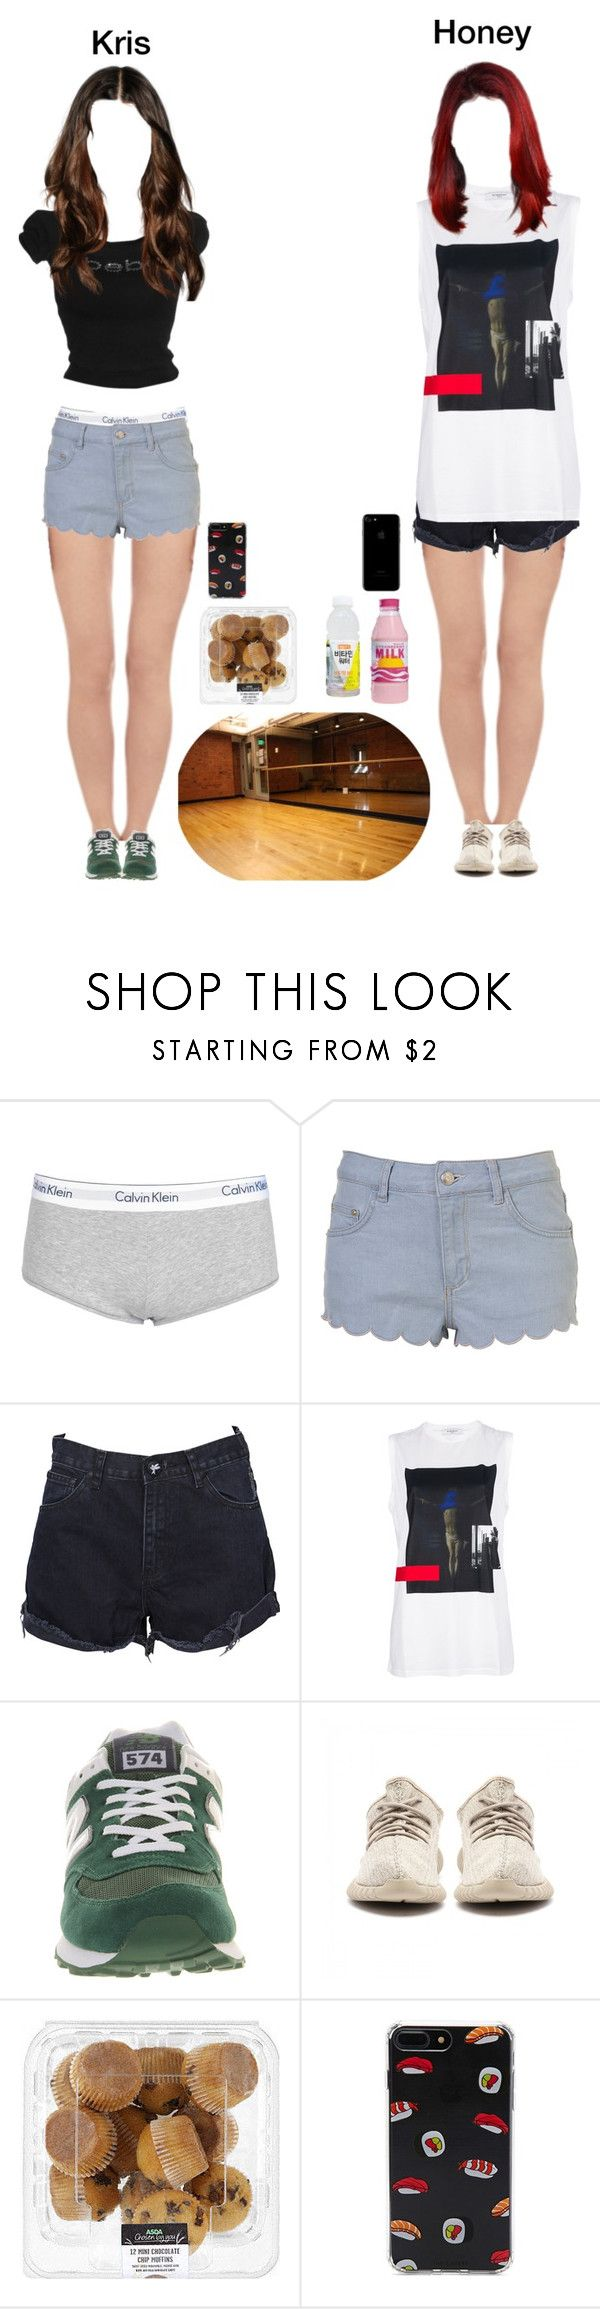 """Kris & Honey 